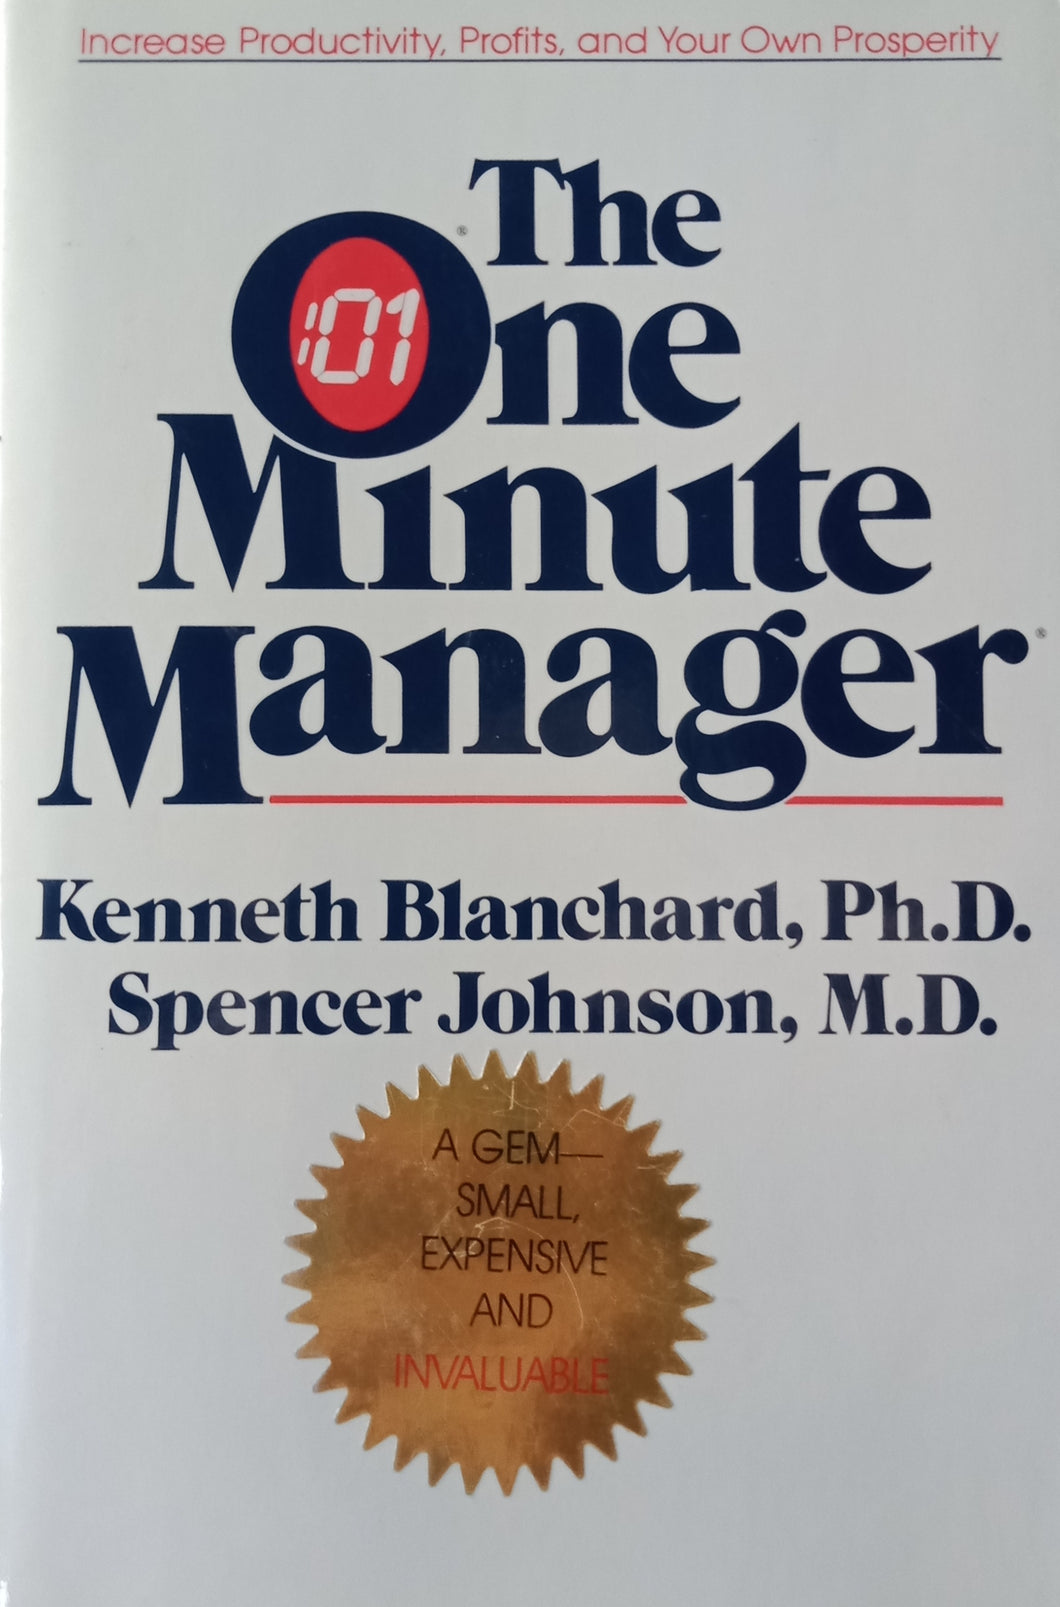 The One Minute Manager by Kenneth Blanchard